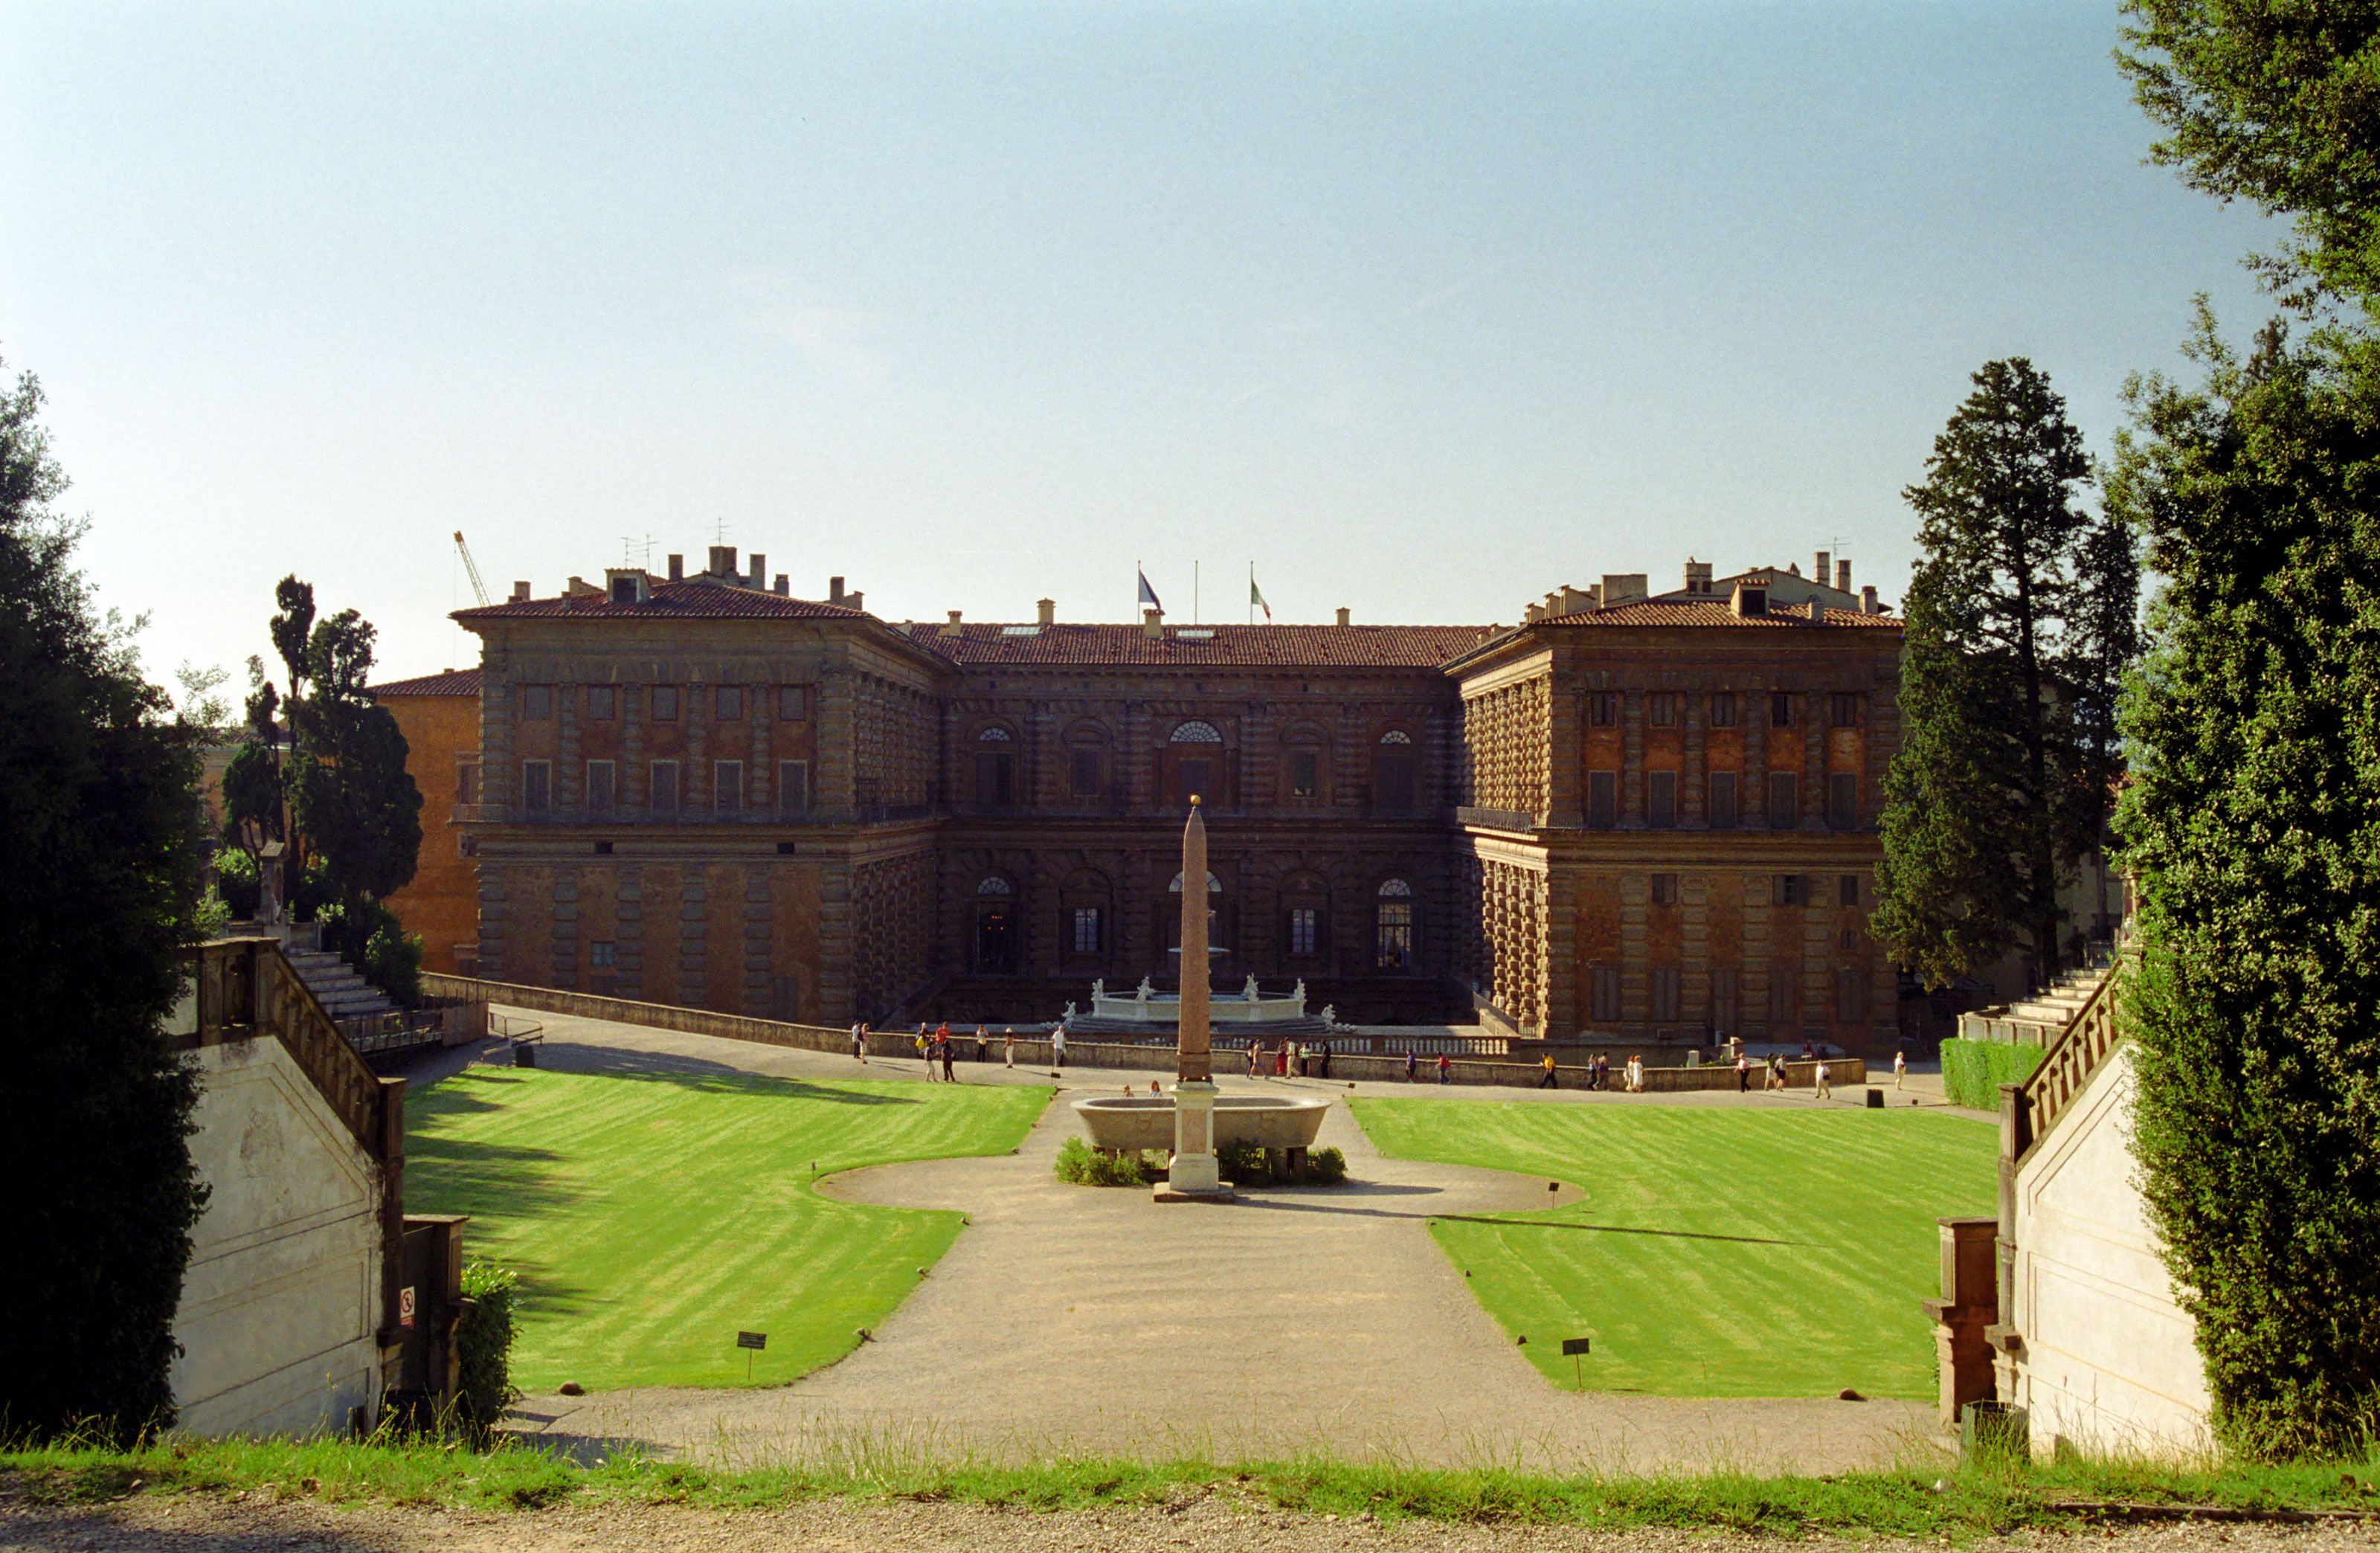 The Pitti Palace in Florence